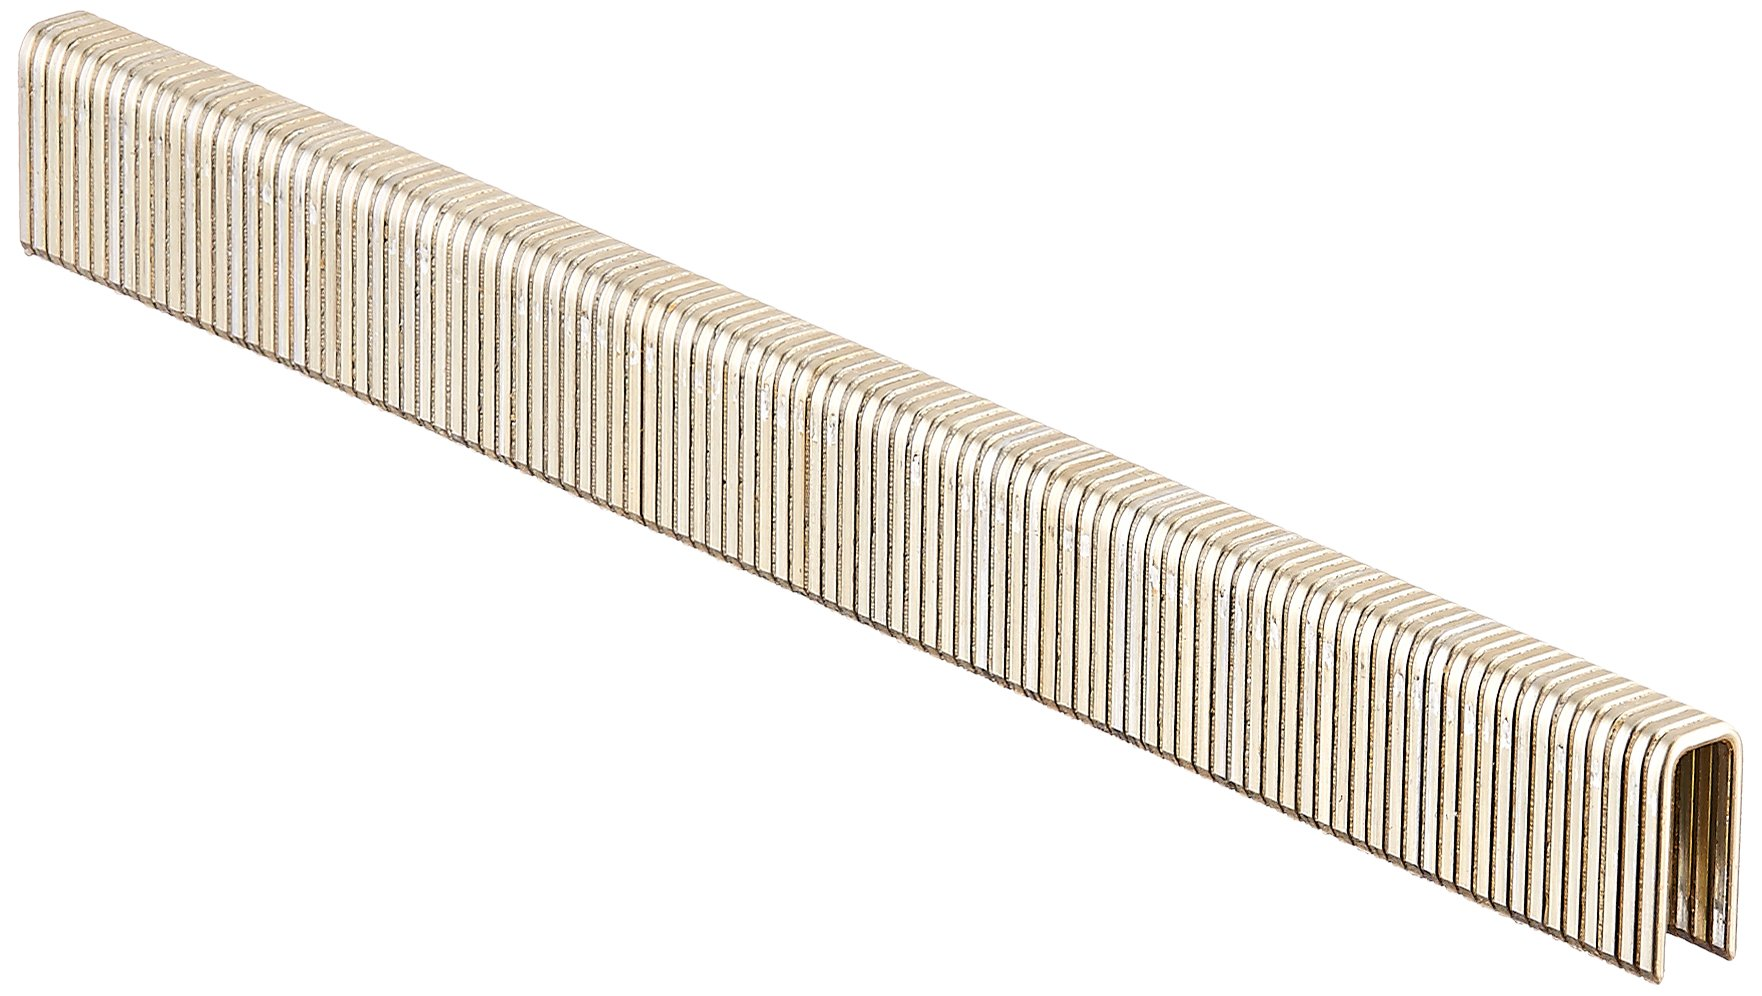 PORTER-CABLE PNS18050 1/2-Inch, 18 Gauge Narrow Crown (1/4-Inch) Staple (5000-Pack) by PORTER-CABLE